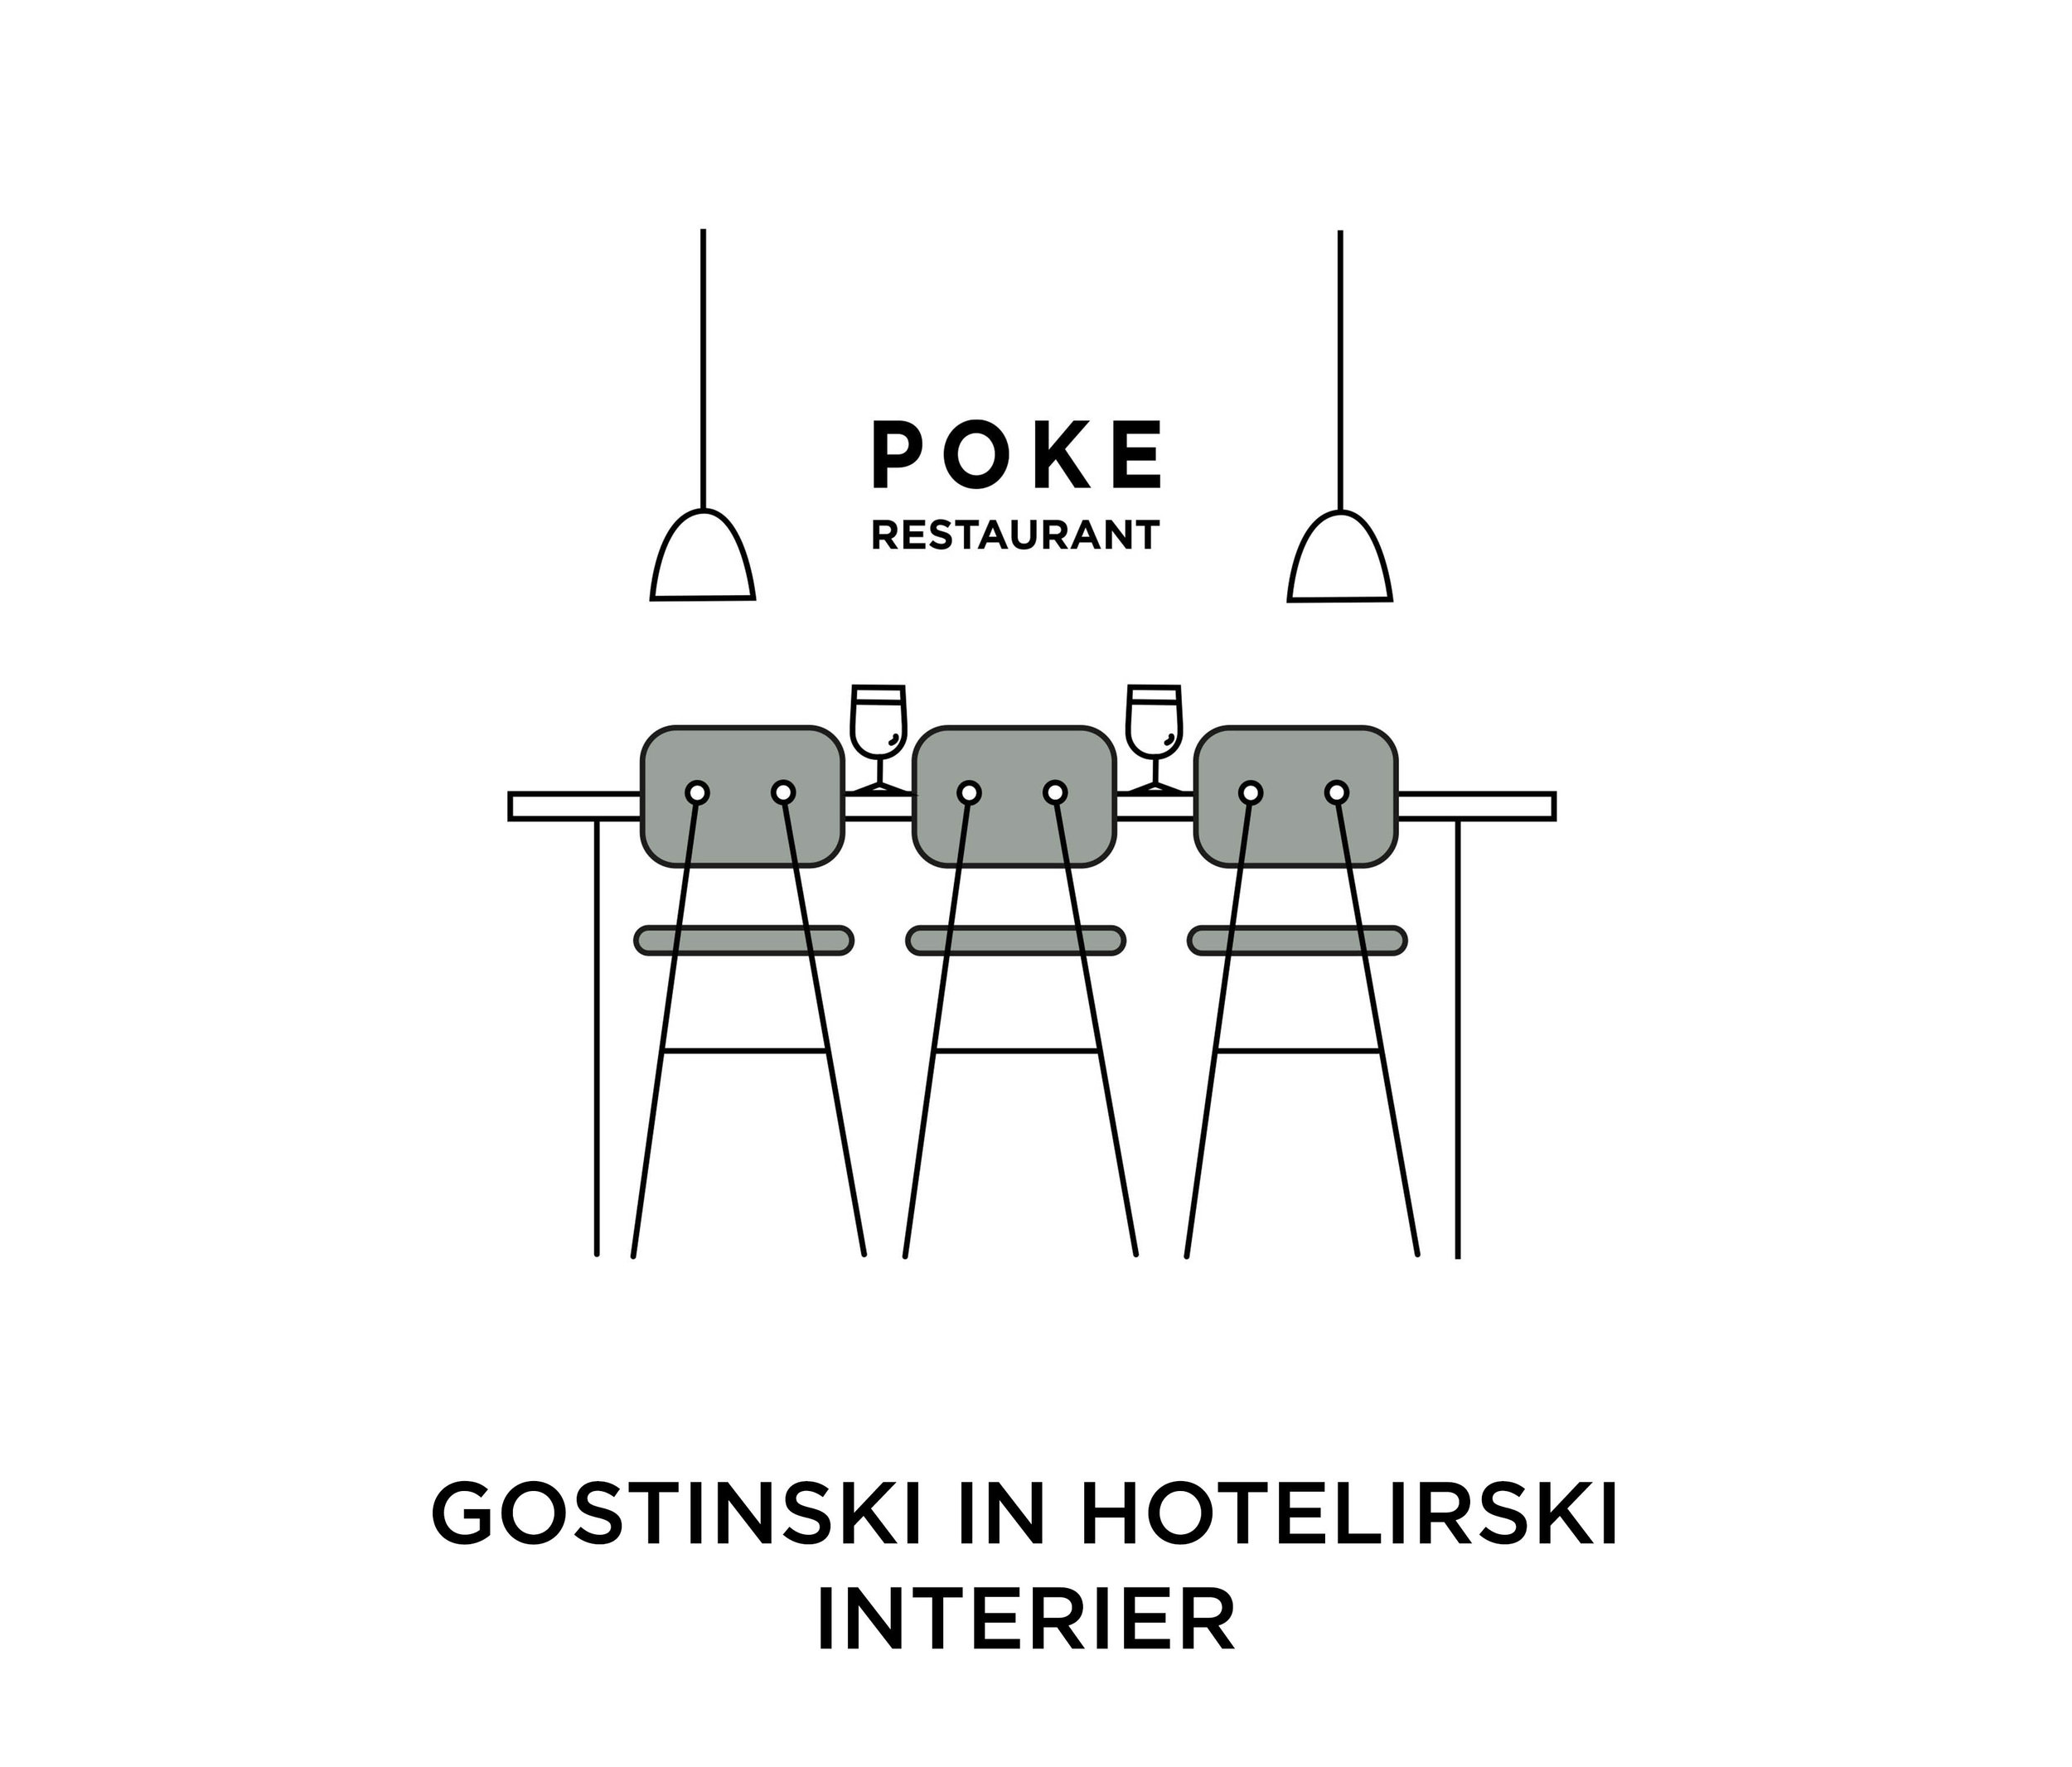 pokestudio_gostinski in hotelirski interier_1.jpg